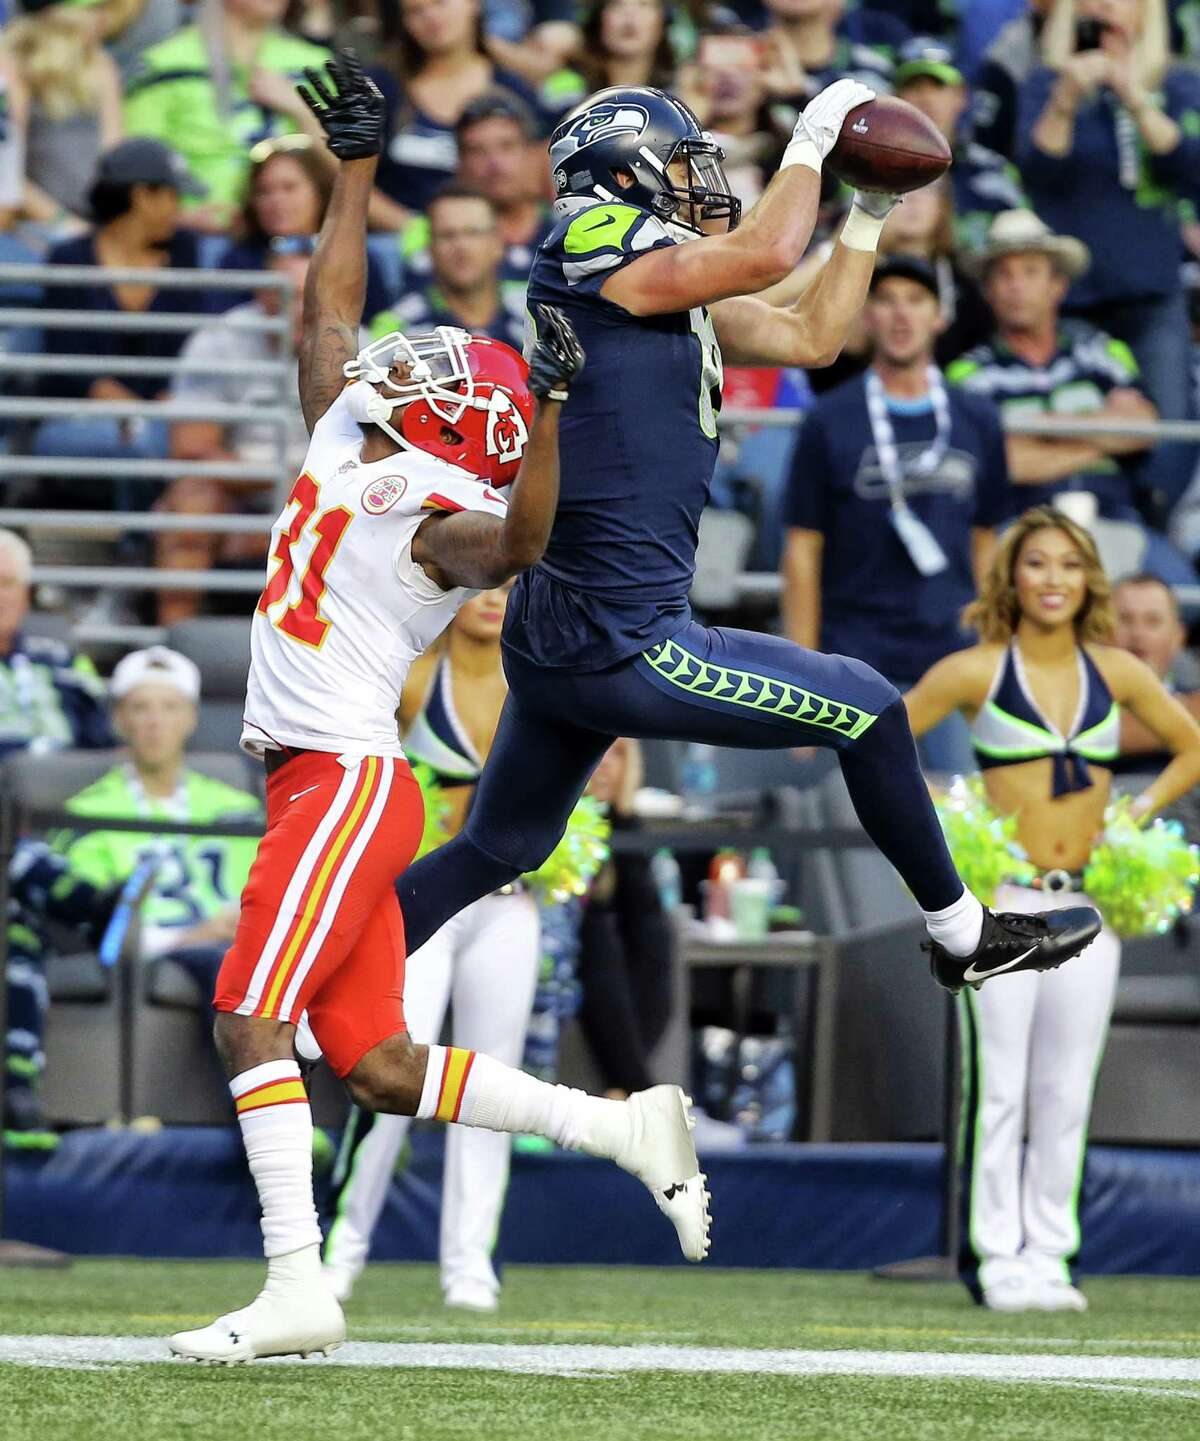 Seahawks wide receiver Tanner McEvoy catches a touch down pass over Chiefs player DeVante Bausby in the second half of Seattle's preseason game against Kansas City, Friday, Aug. 25, 2017 at CenturyLink Field.